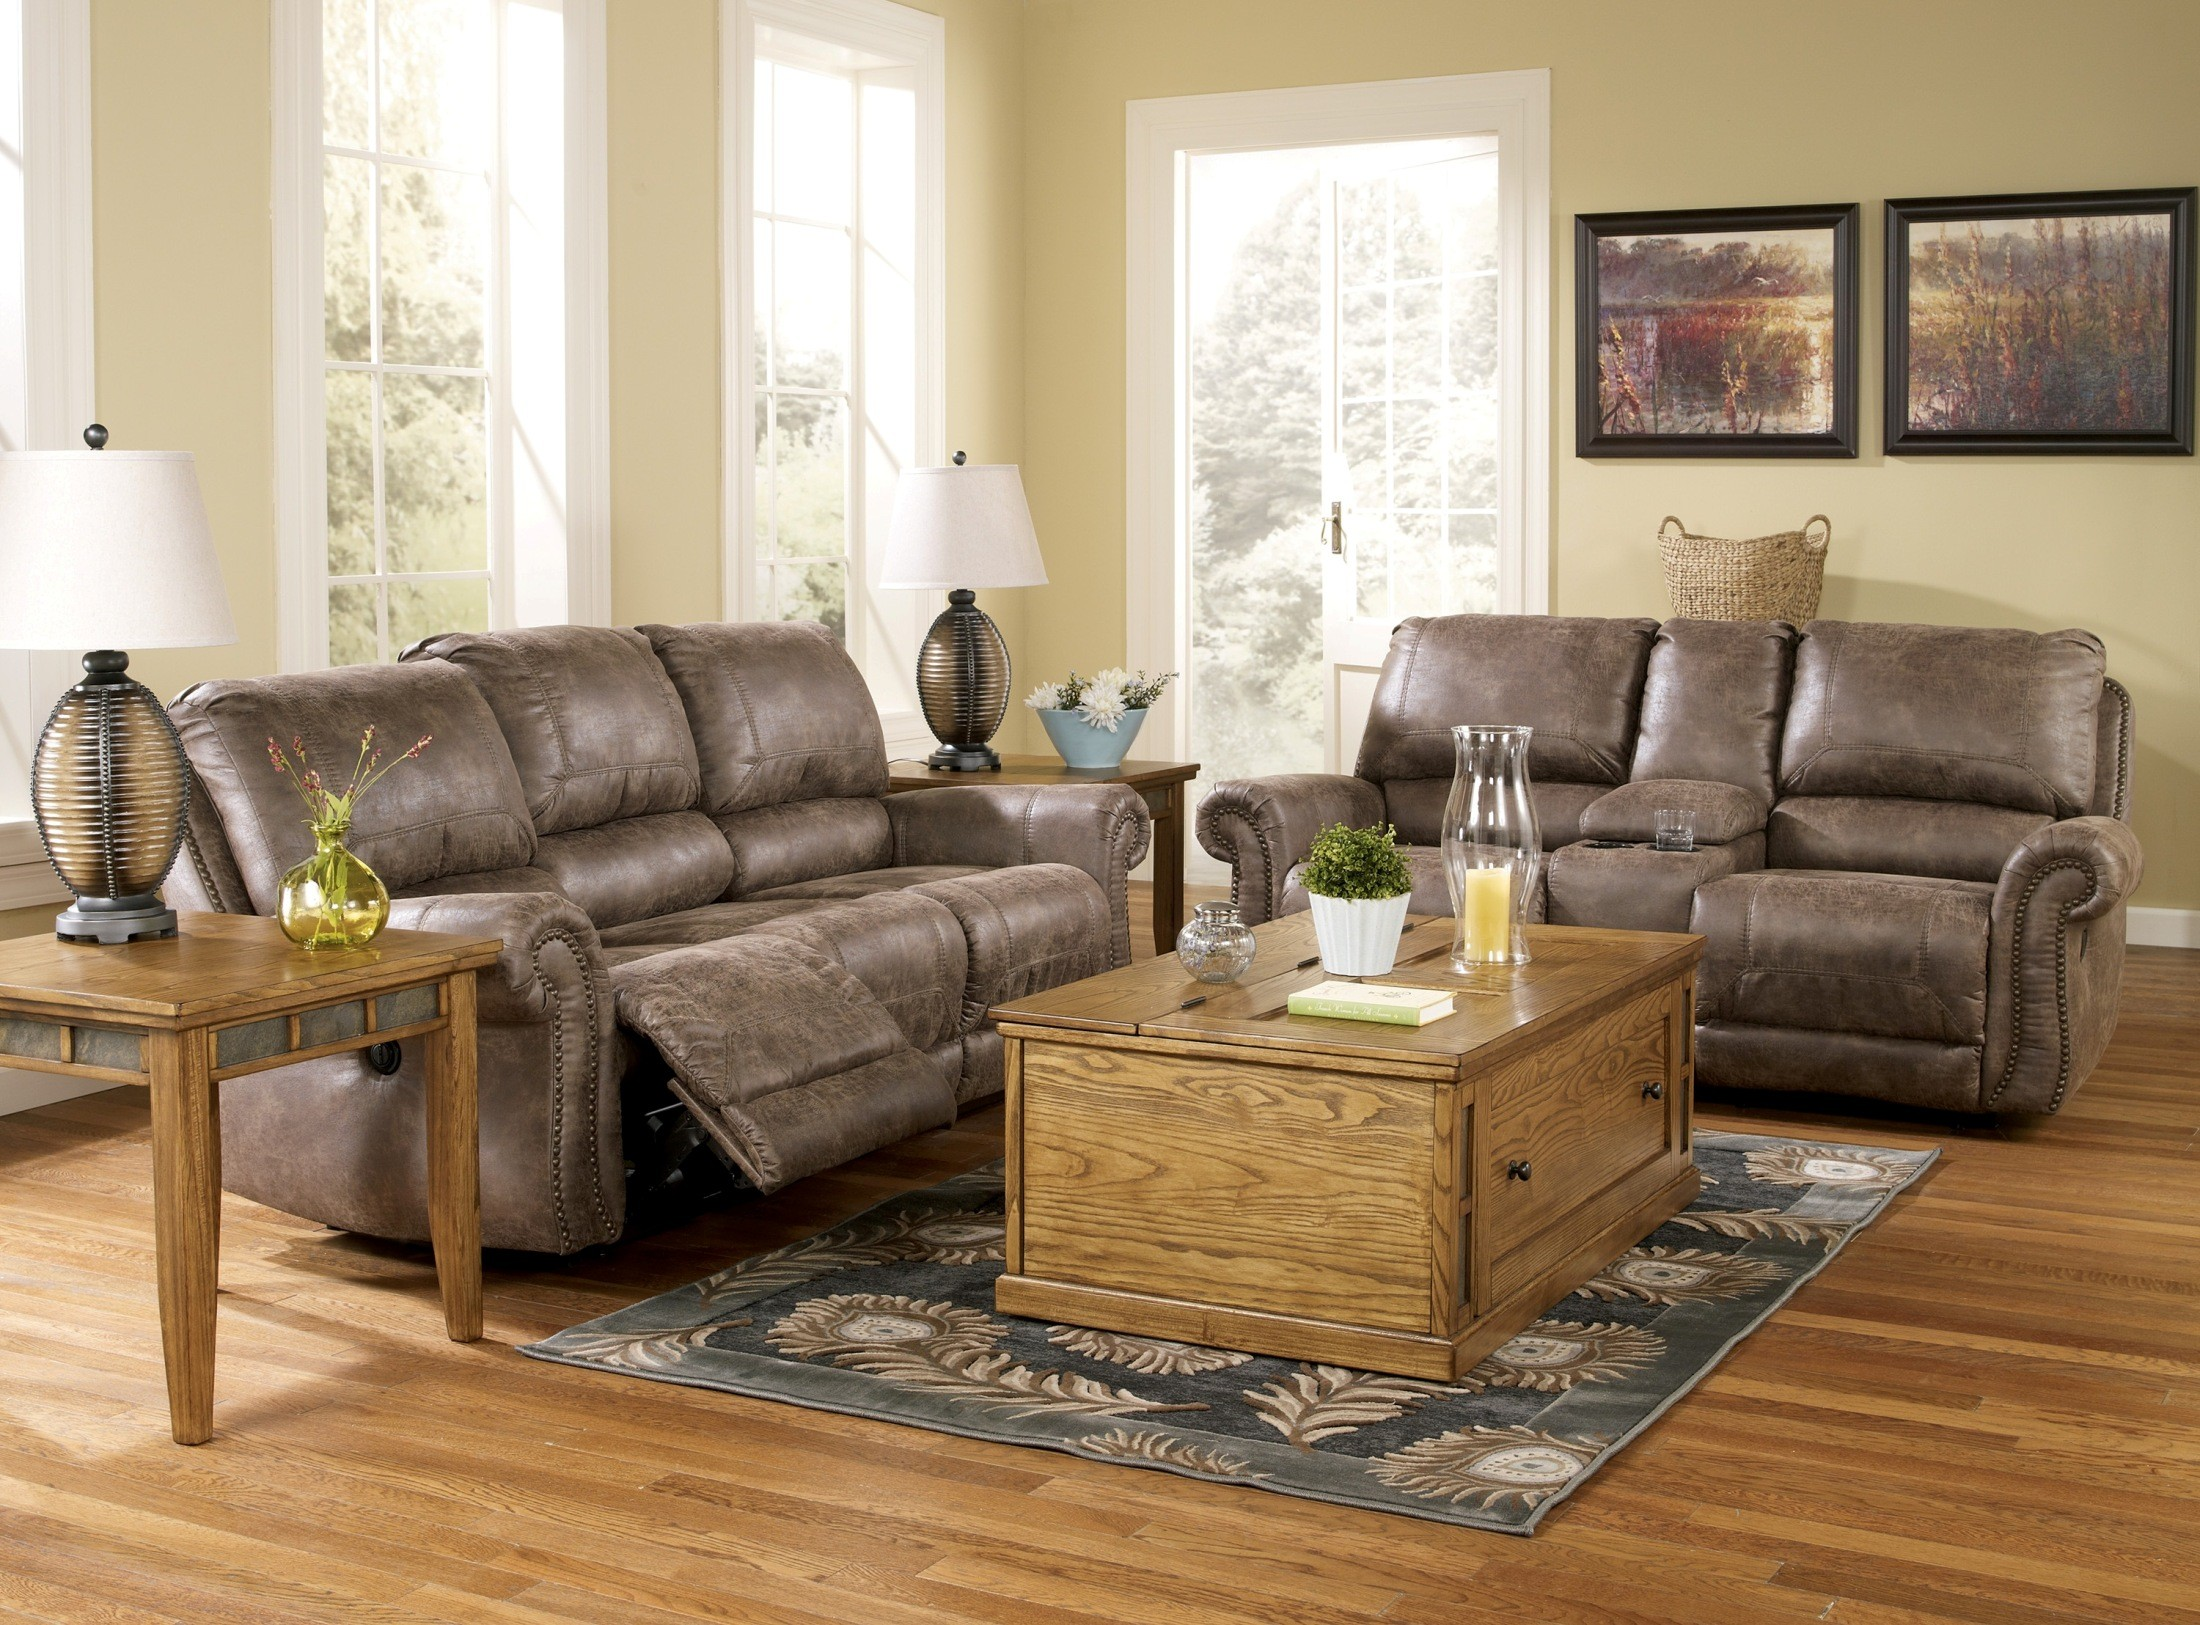 Oberson Gunsmoke Reclining Living Room Set From Ashley 74100 Coleman Furniture